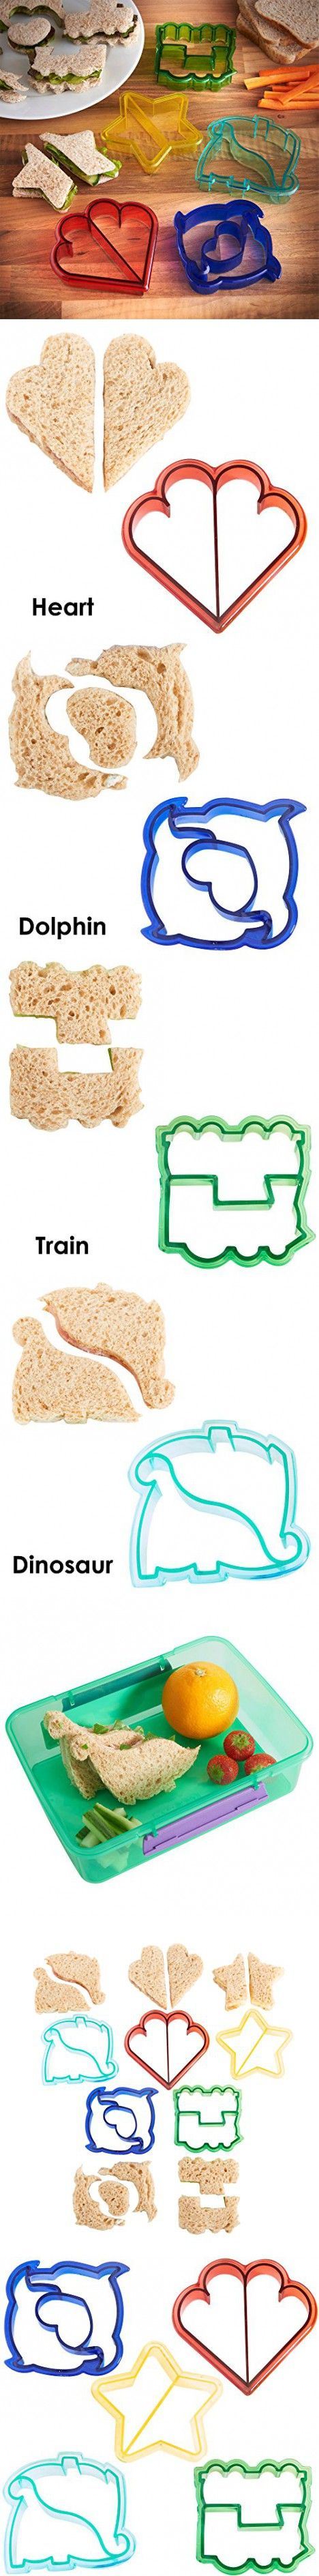 VonShef Fun Cake, Cookie & Sandwich Cutter Shapes for Kids - Set of 5 Shapes: Dinosaur, Dolphin, Heart, Star & Train